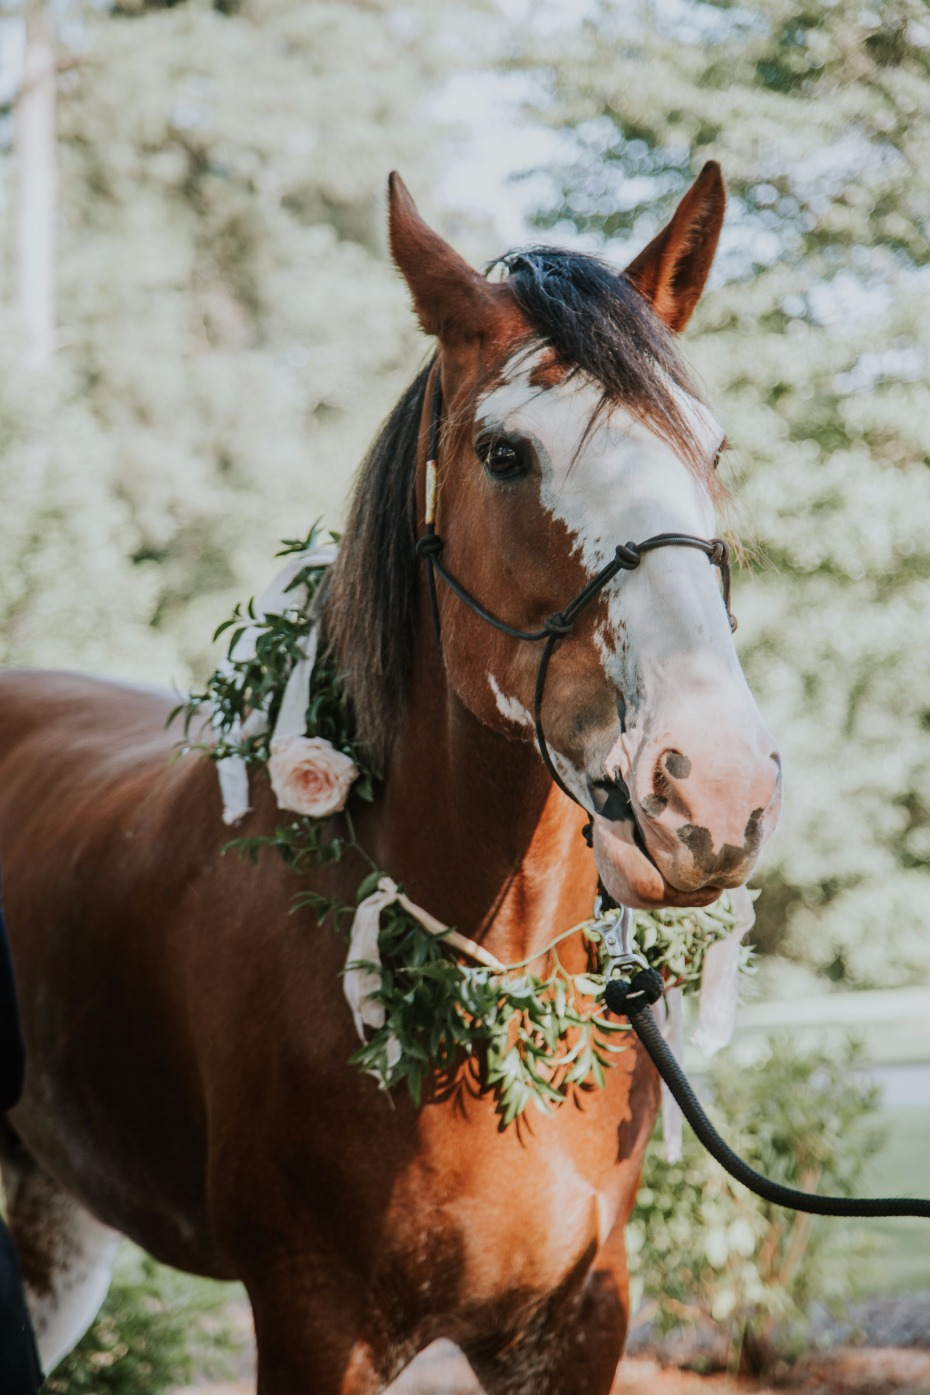 romantic flower halo for the wedding horse